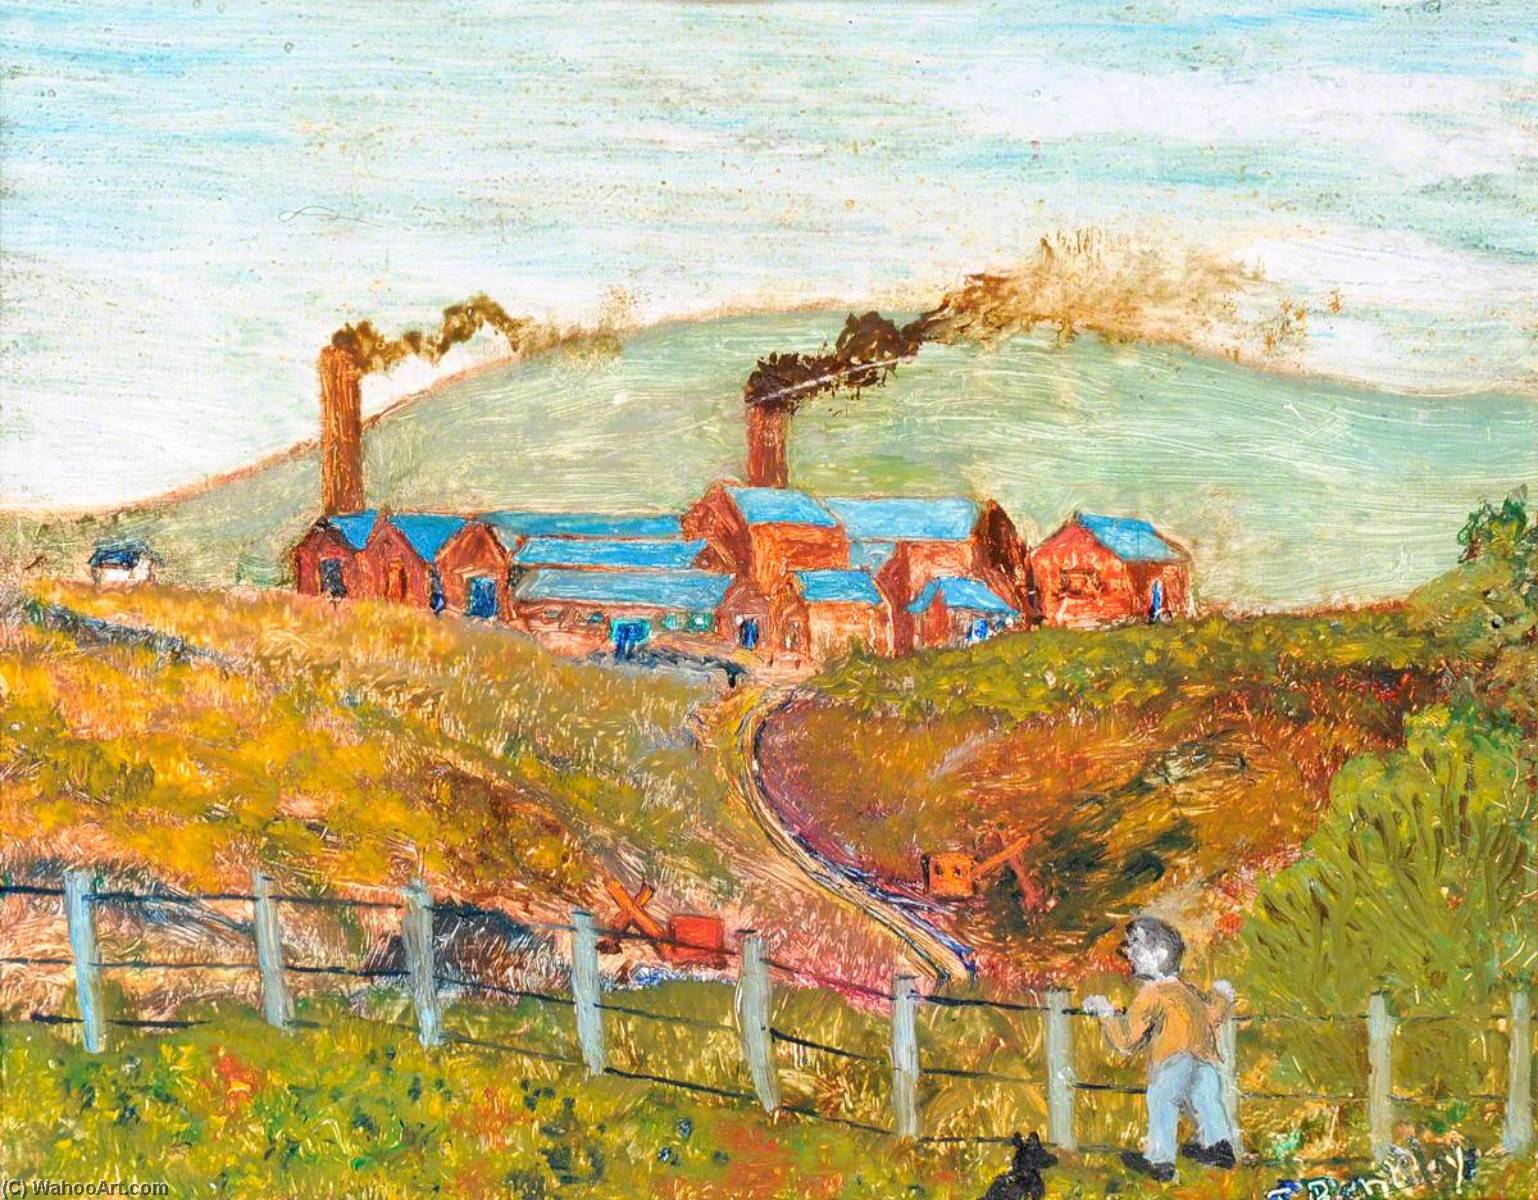 Lane End Brickworks, Buckley, 1996 by James Bentley | Famous Paintings Reproductions | WahooArt.com